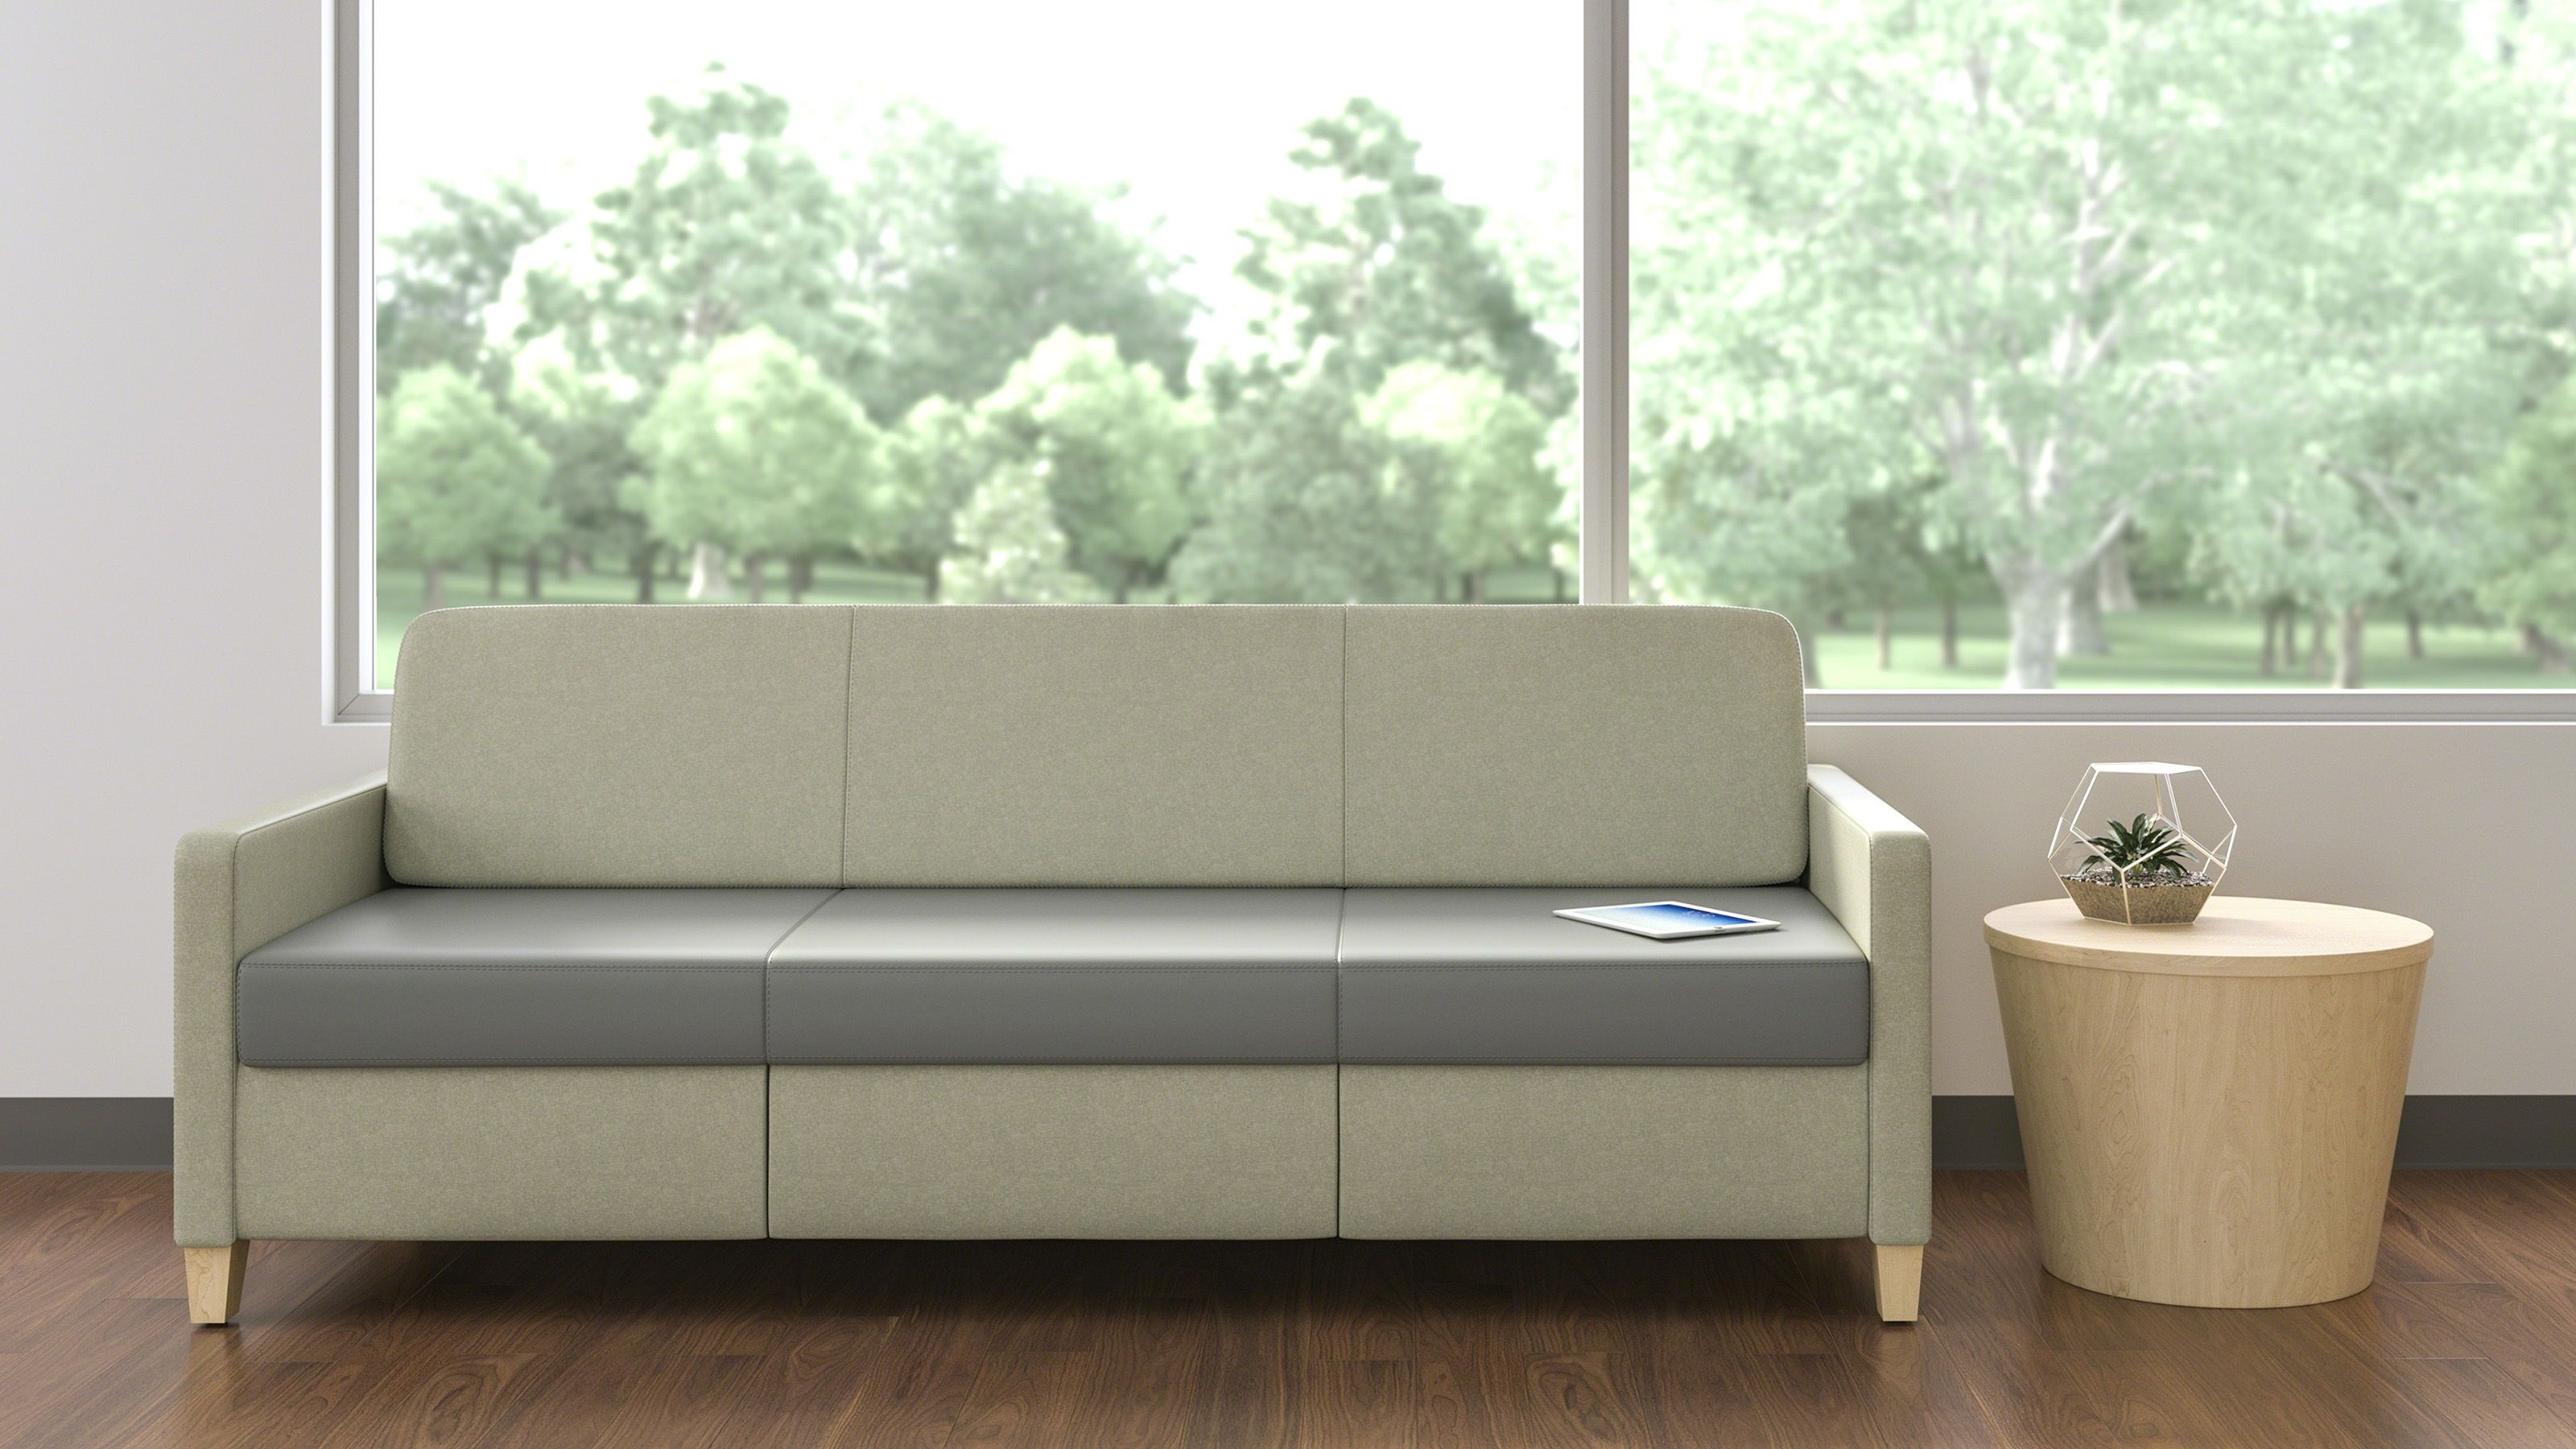 Sieste Lounge Seating and Sleeper Living room sets